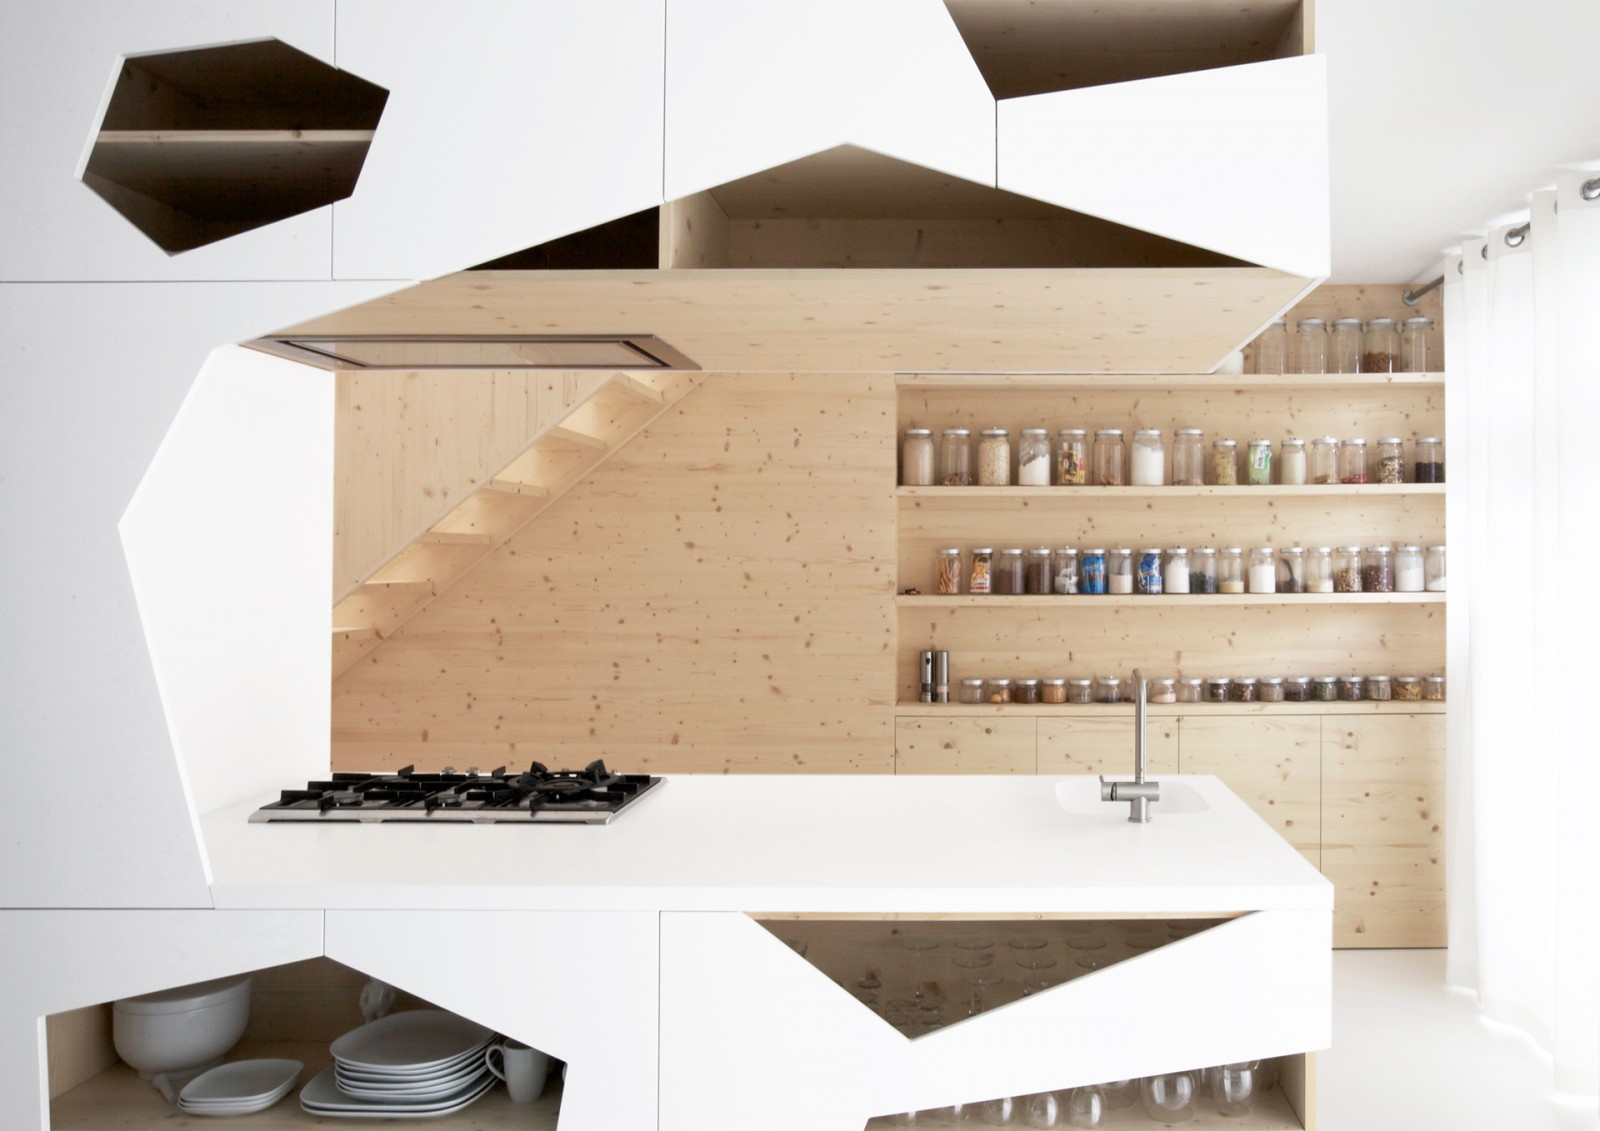 Stunning Shelves Design Ideas Contemporary - Bikemag.us - bikemag.us